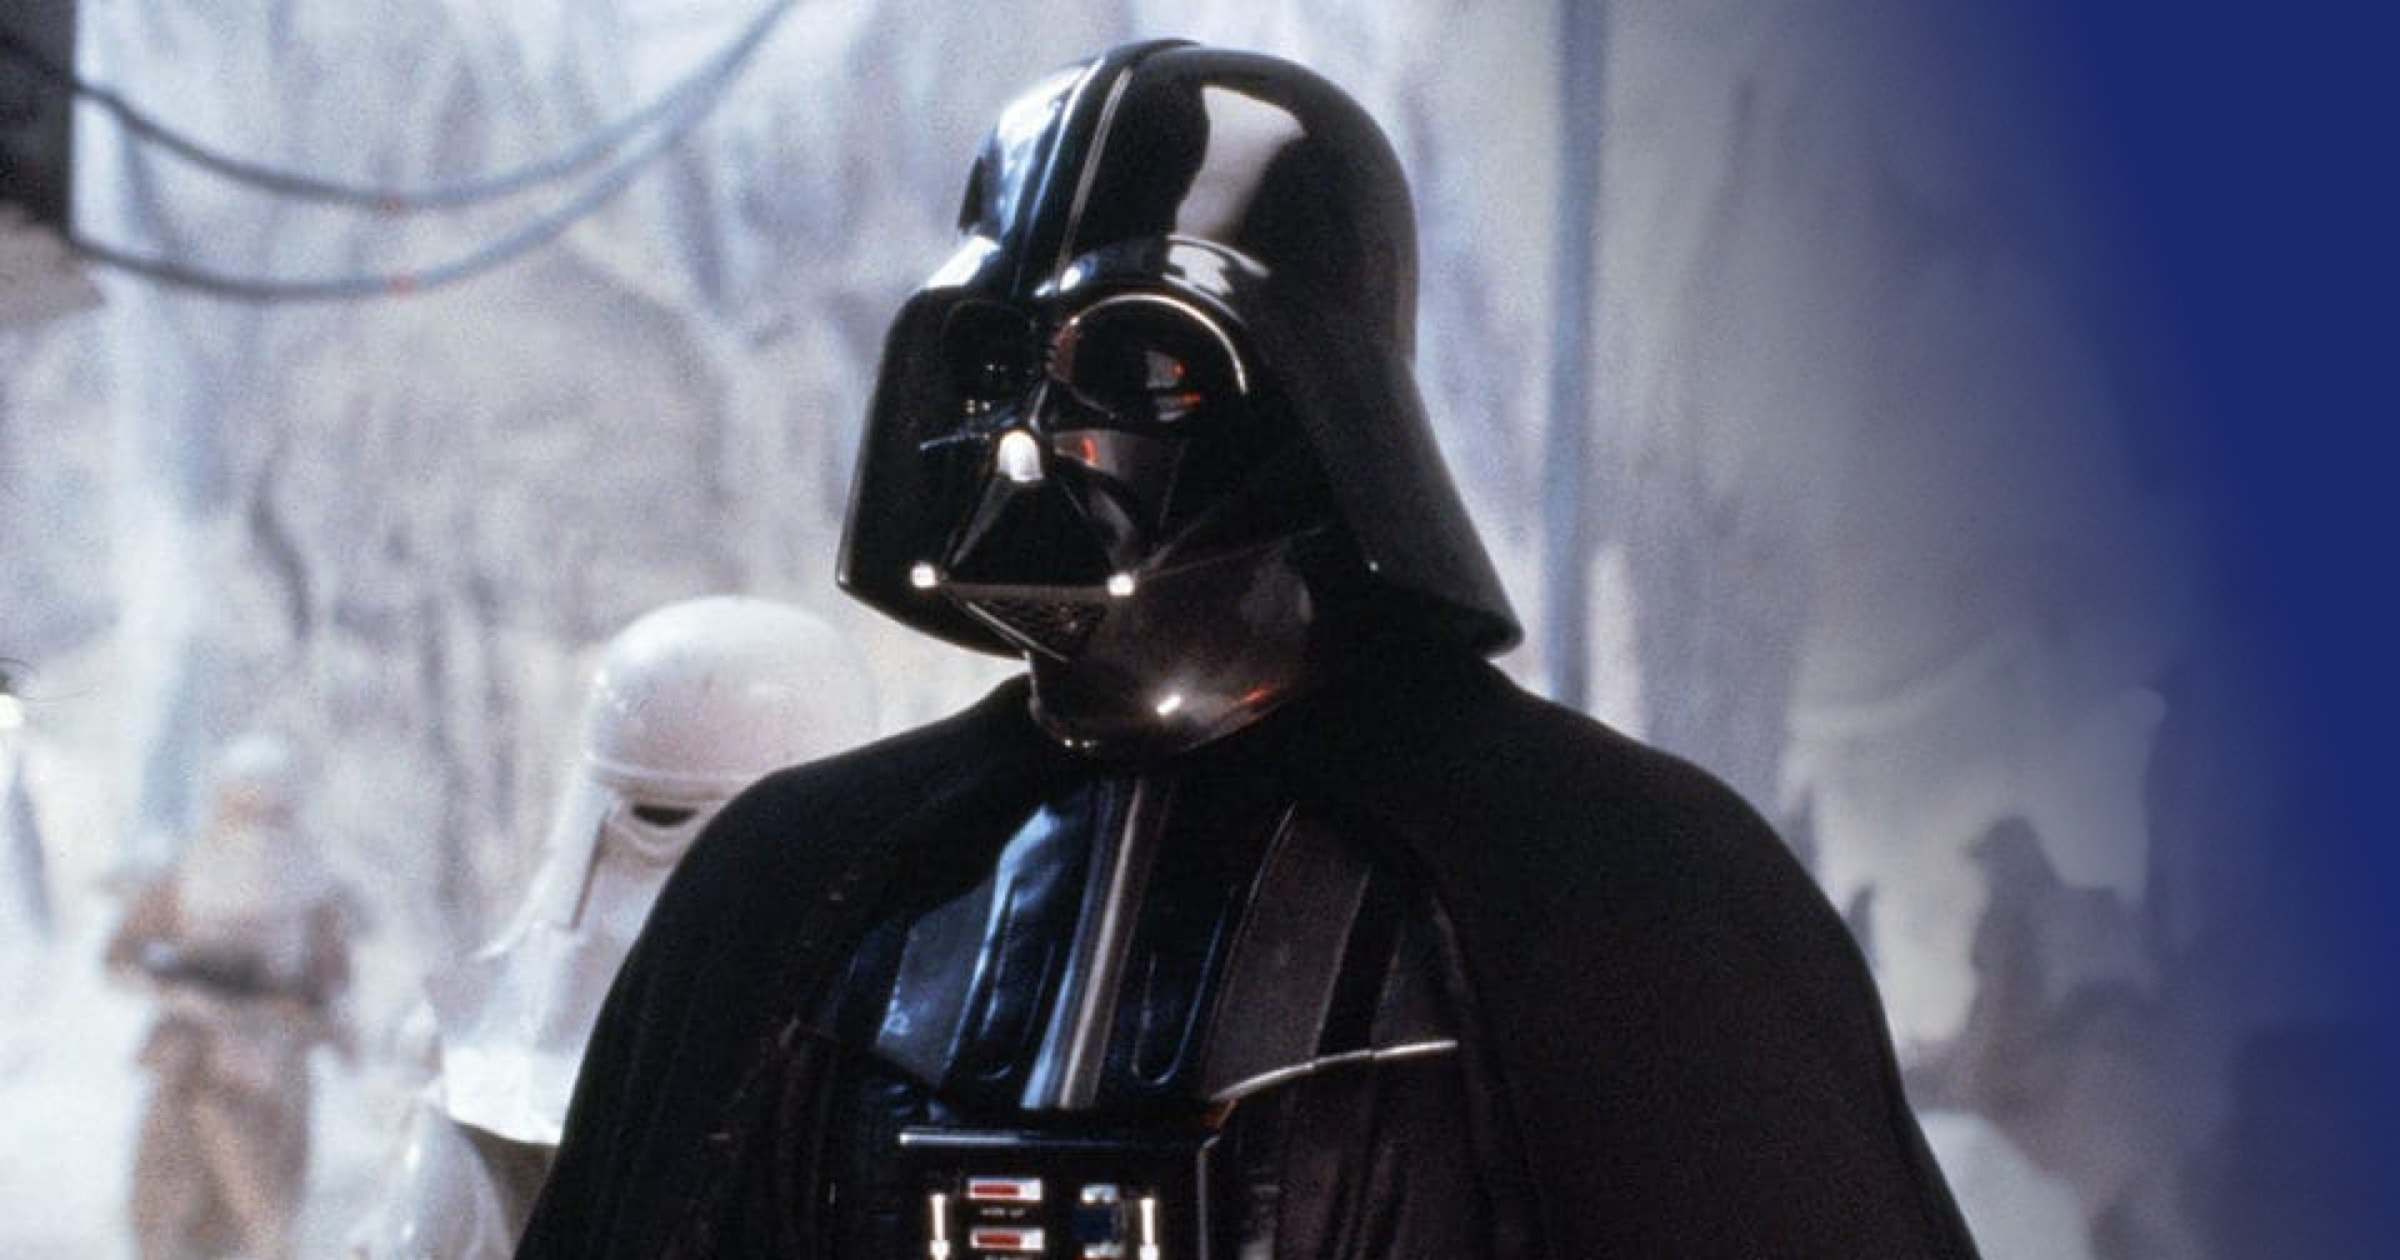 When James Earl Jones famously dubbed Darth Vader, he definitely signed a model release form.